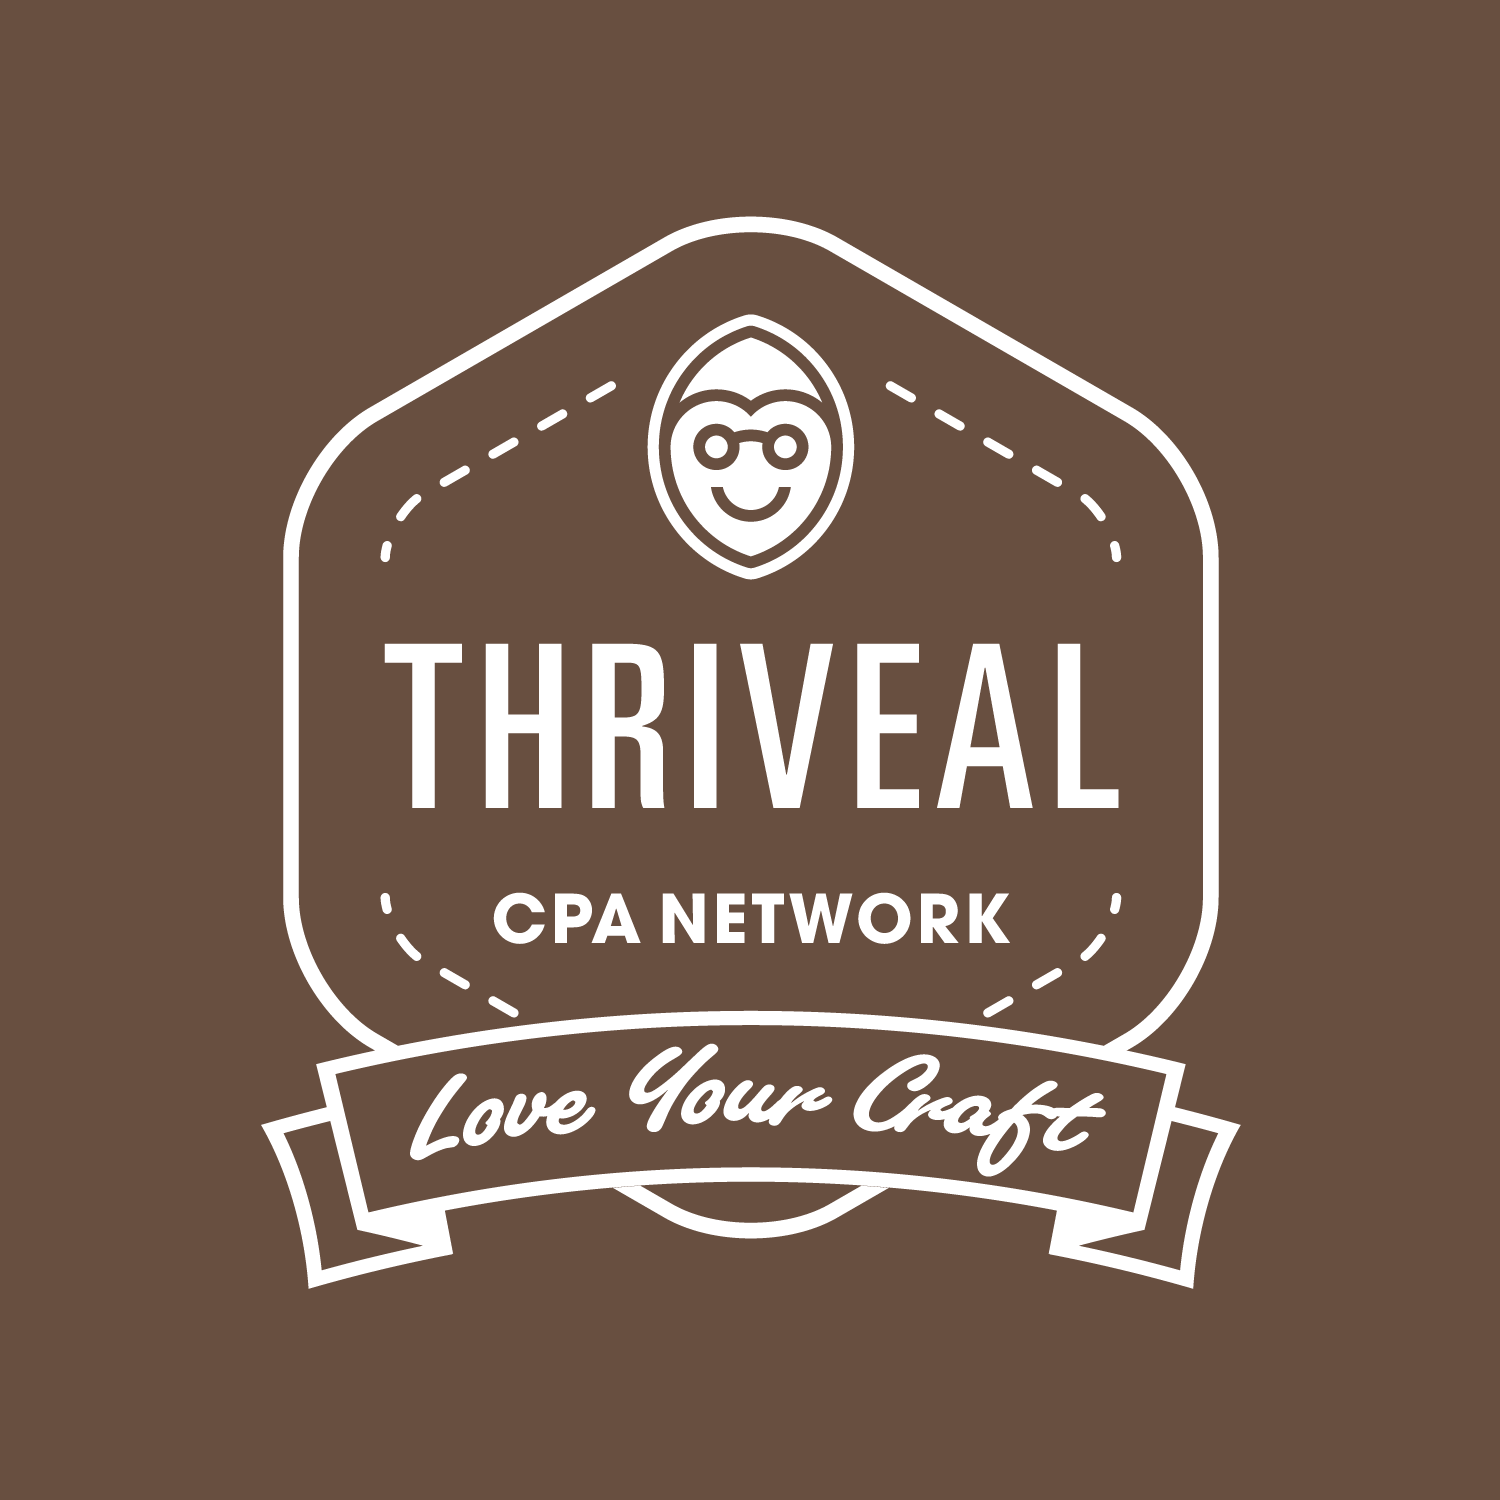 Member of THRIVEal CPA Network